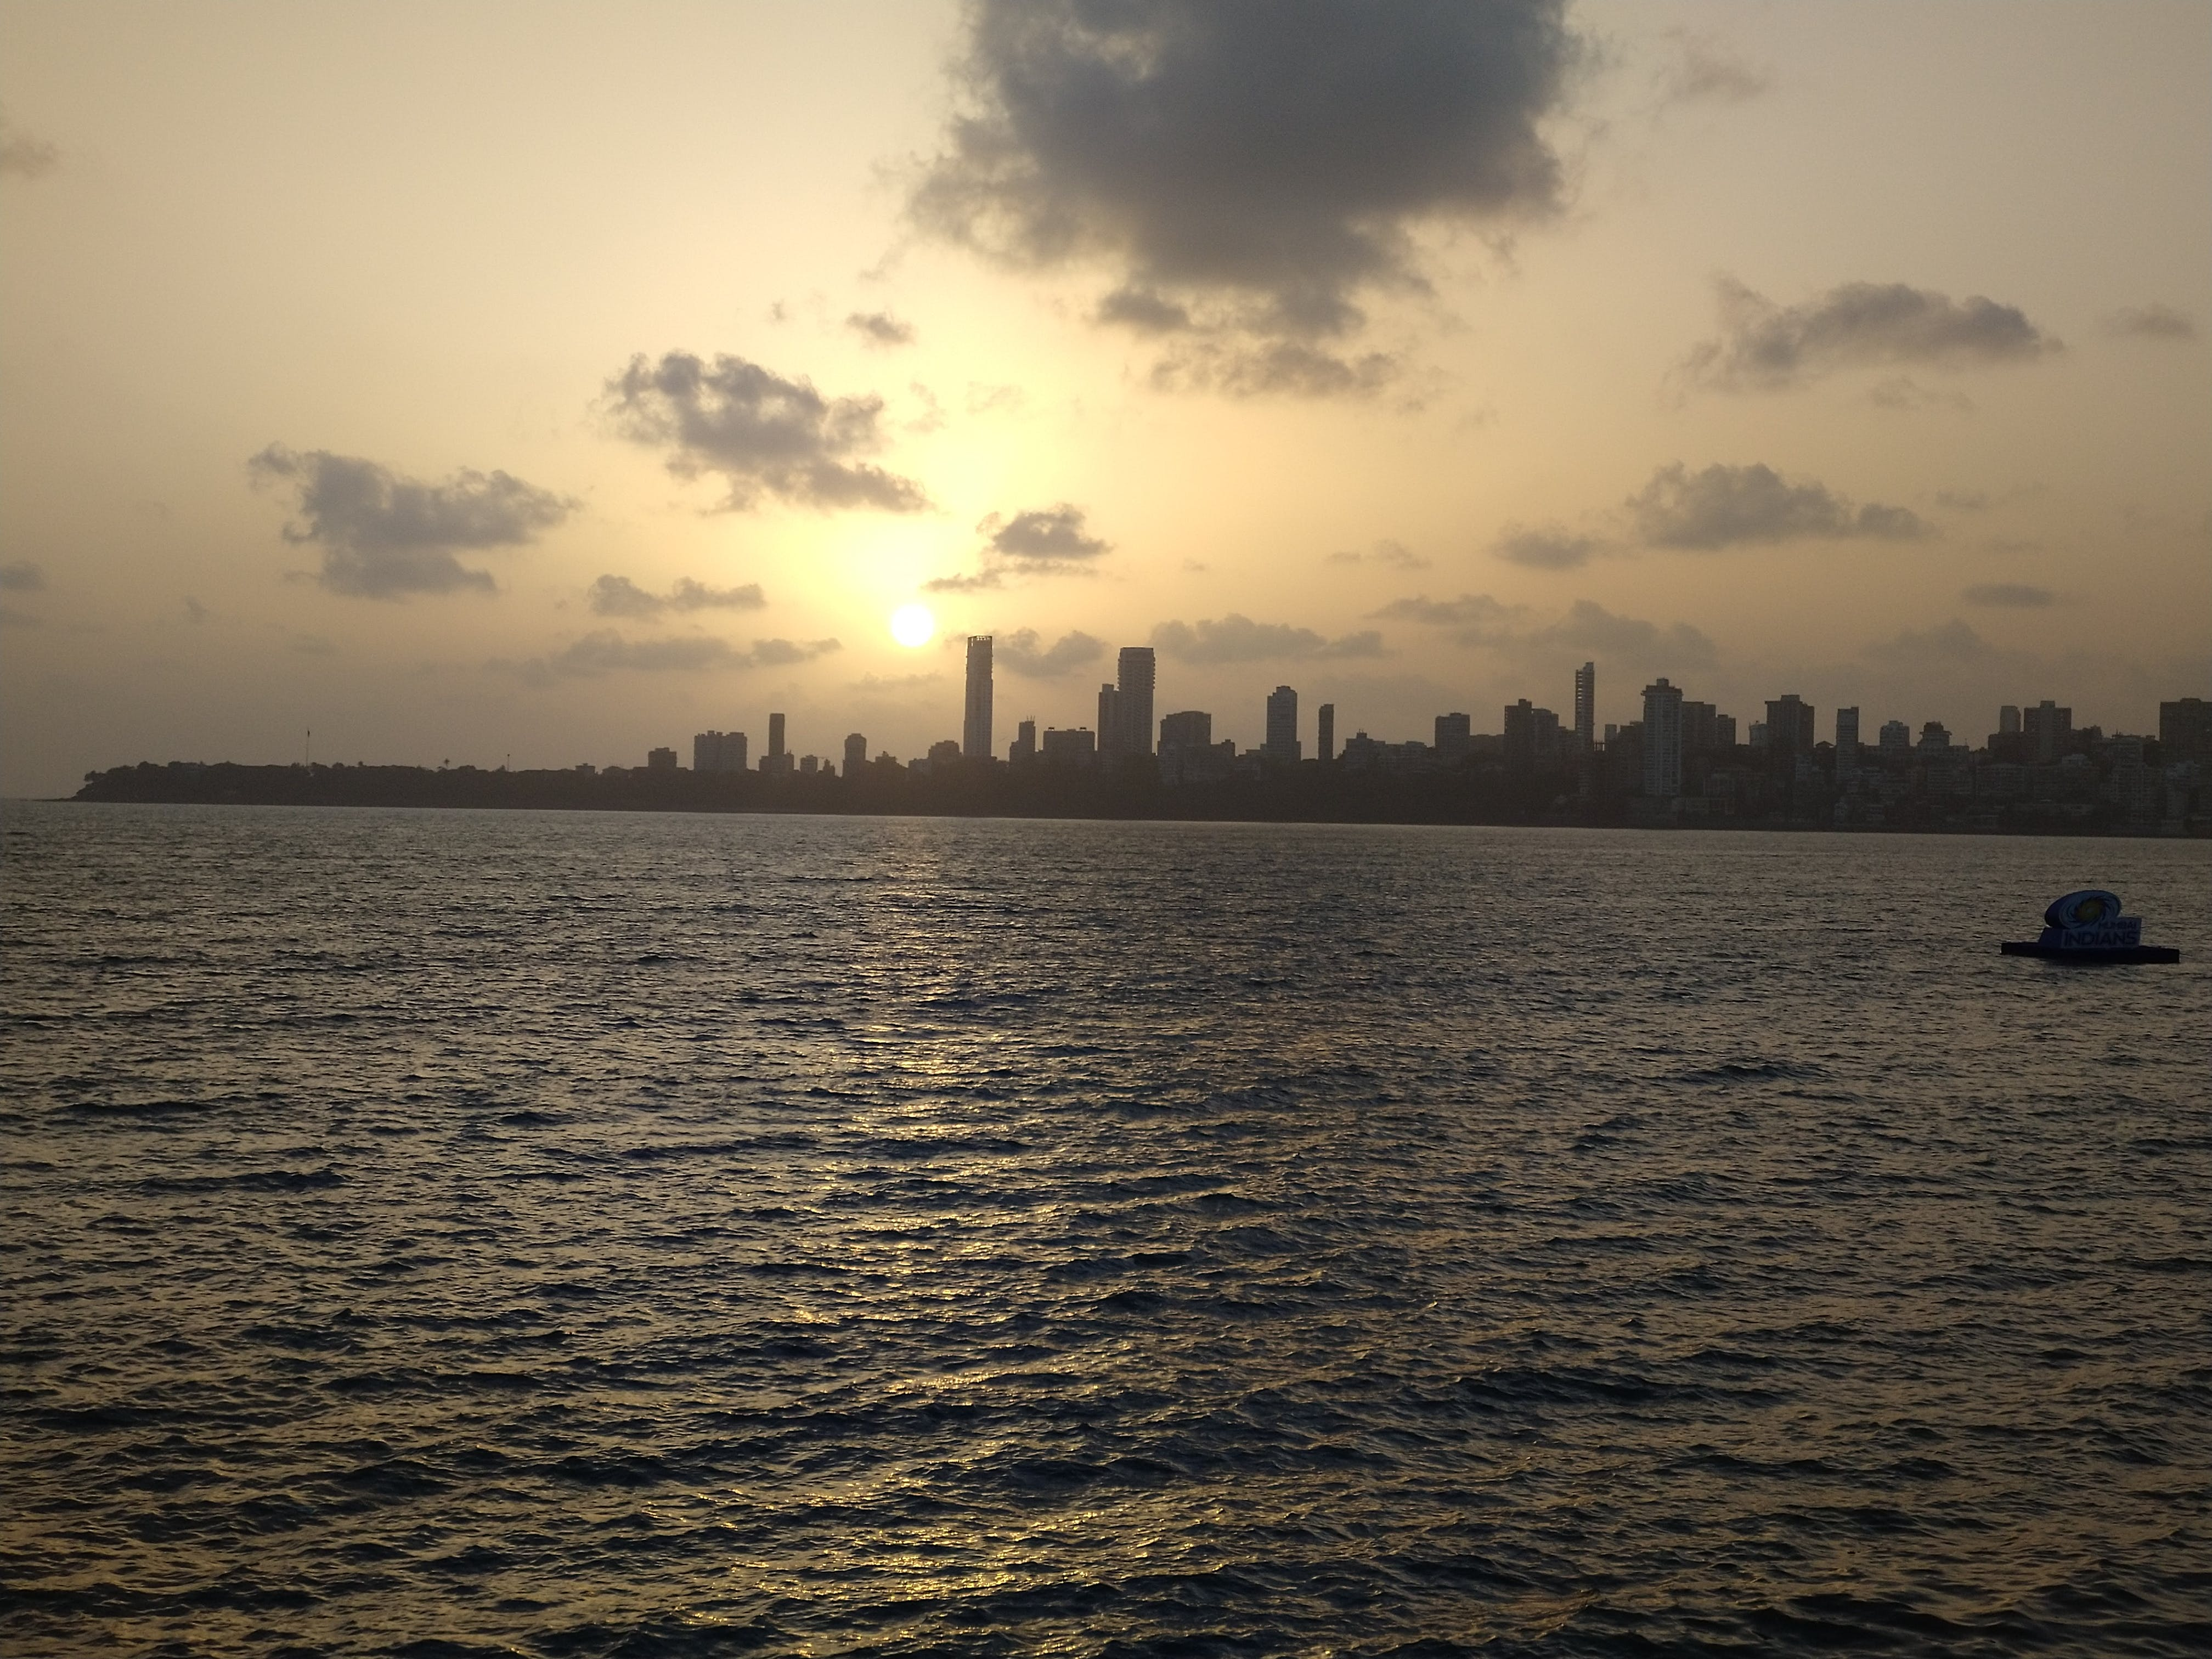 Free stock photo of Sunset at nariman point